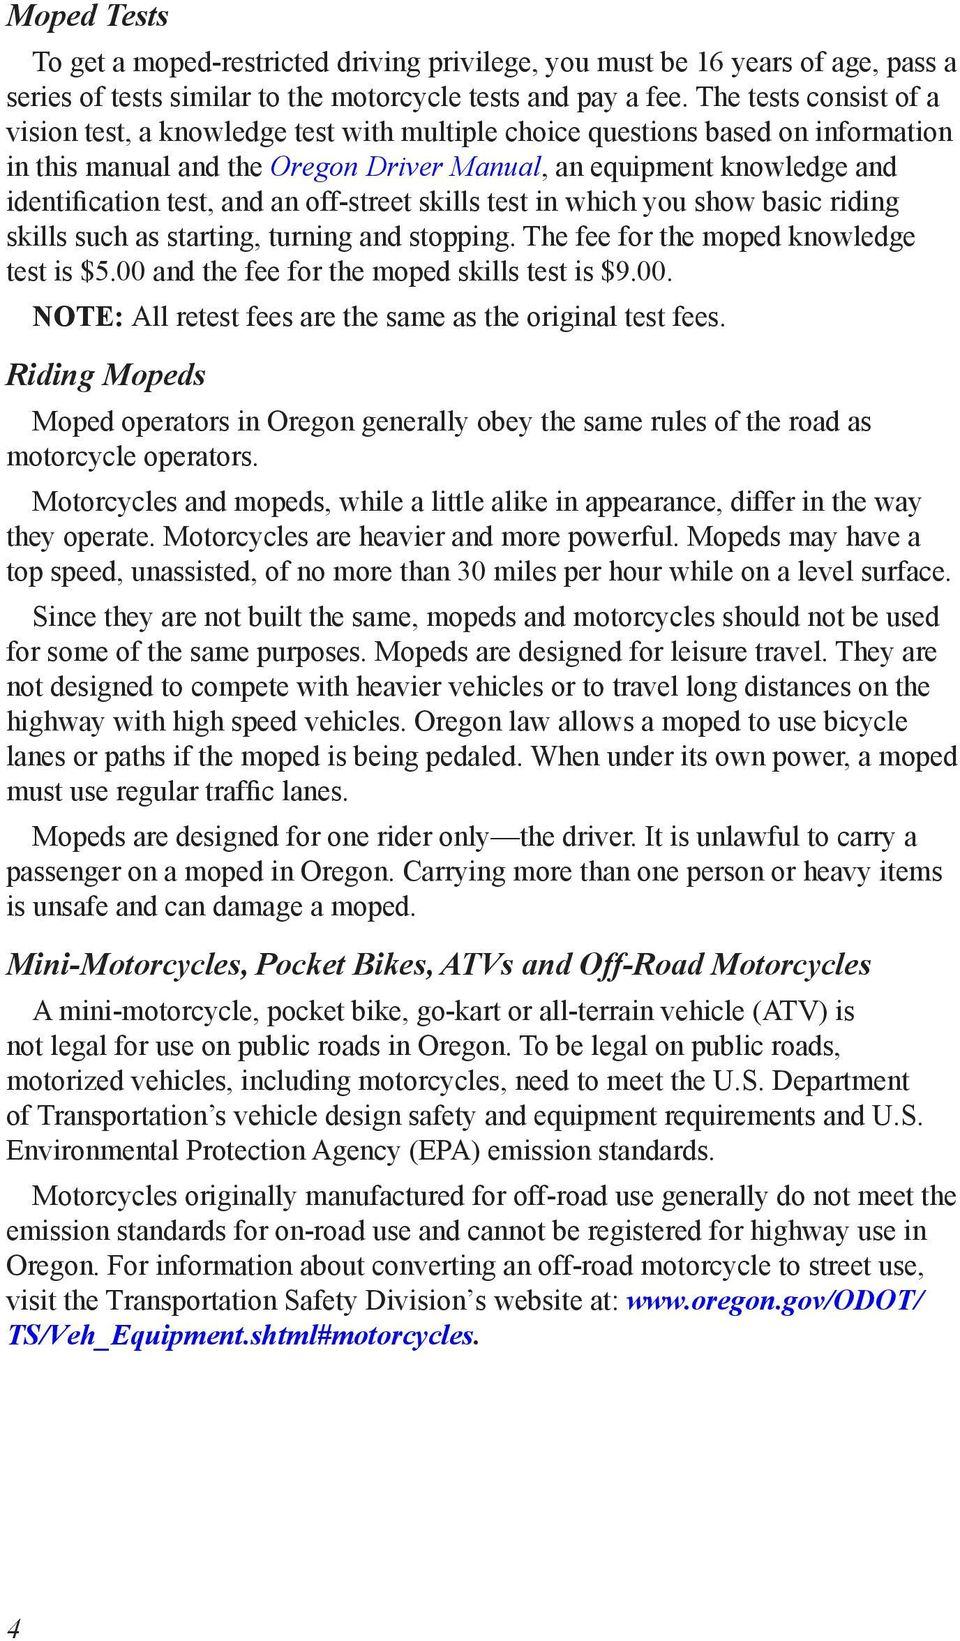 and an off-street skills test in which you show basic riding skills such as starting, turning and stopping. The fee for the moped knowledge test is $5.00 and the fee for the moped skills test is $9.